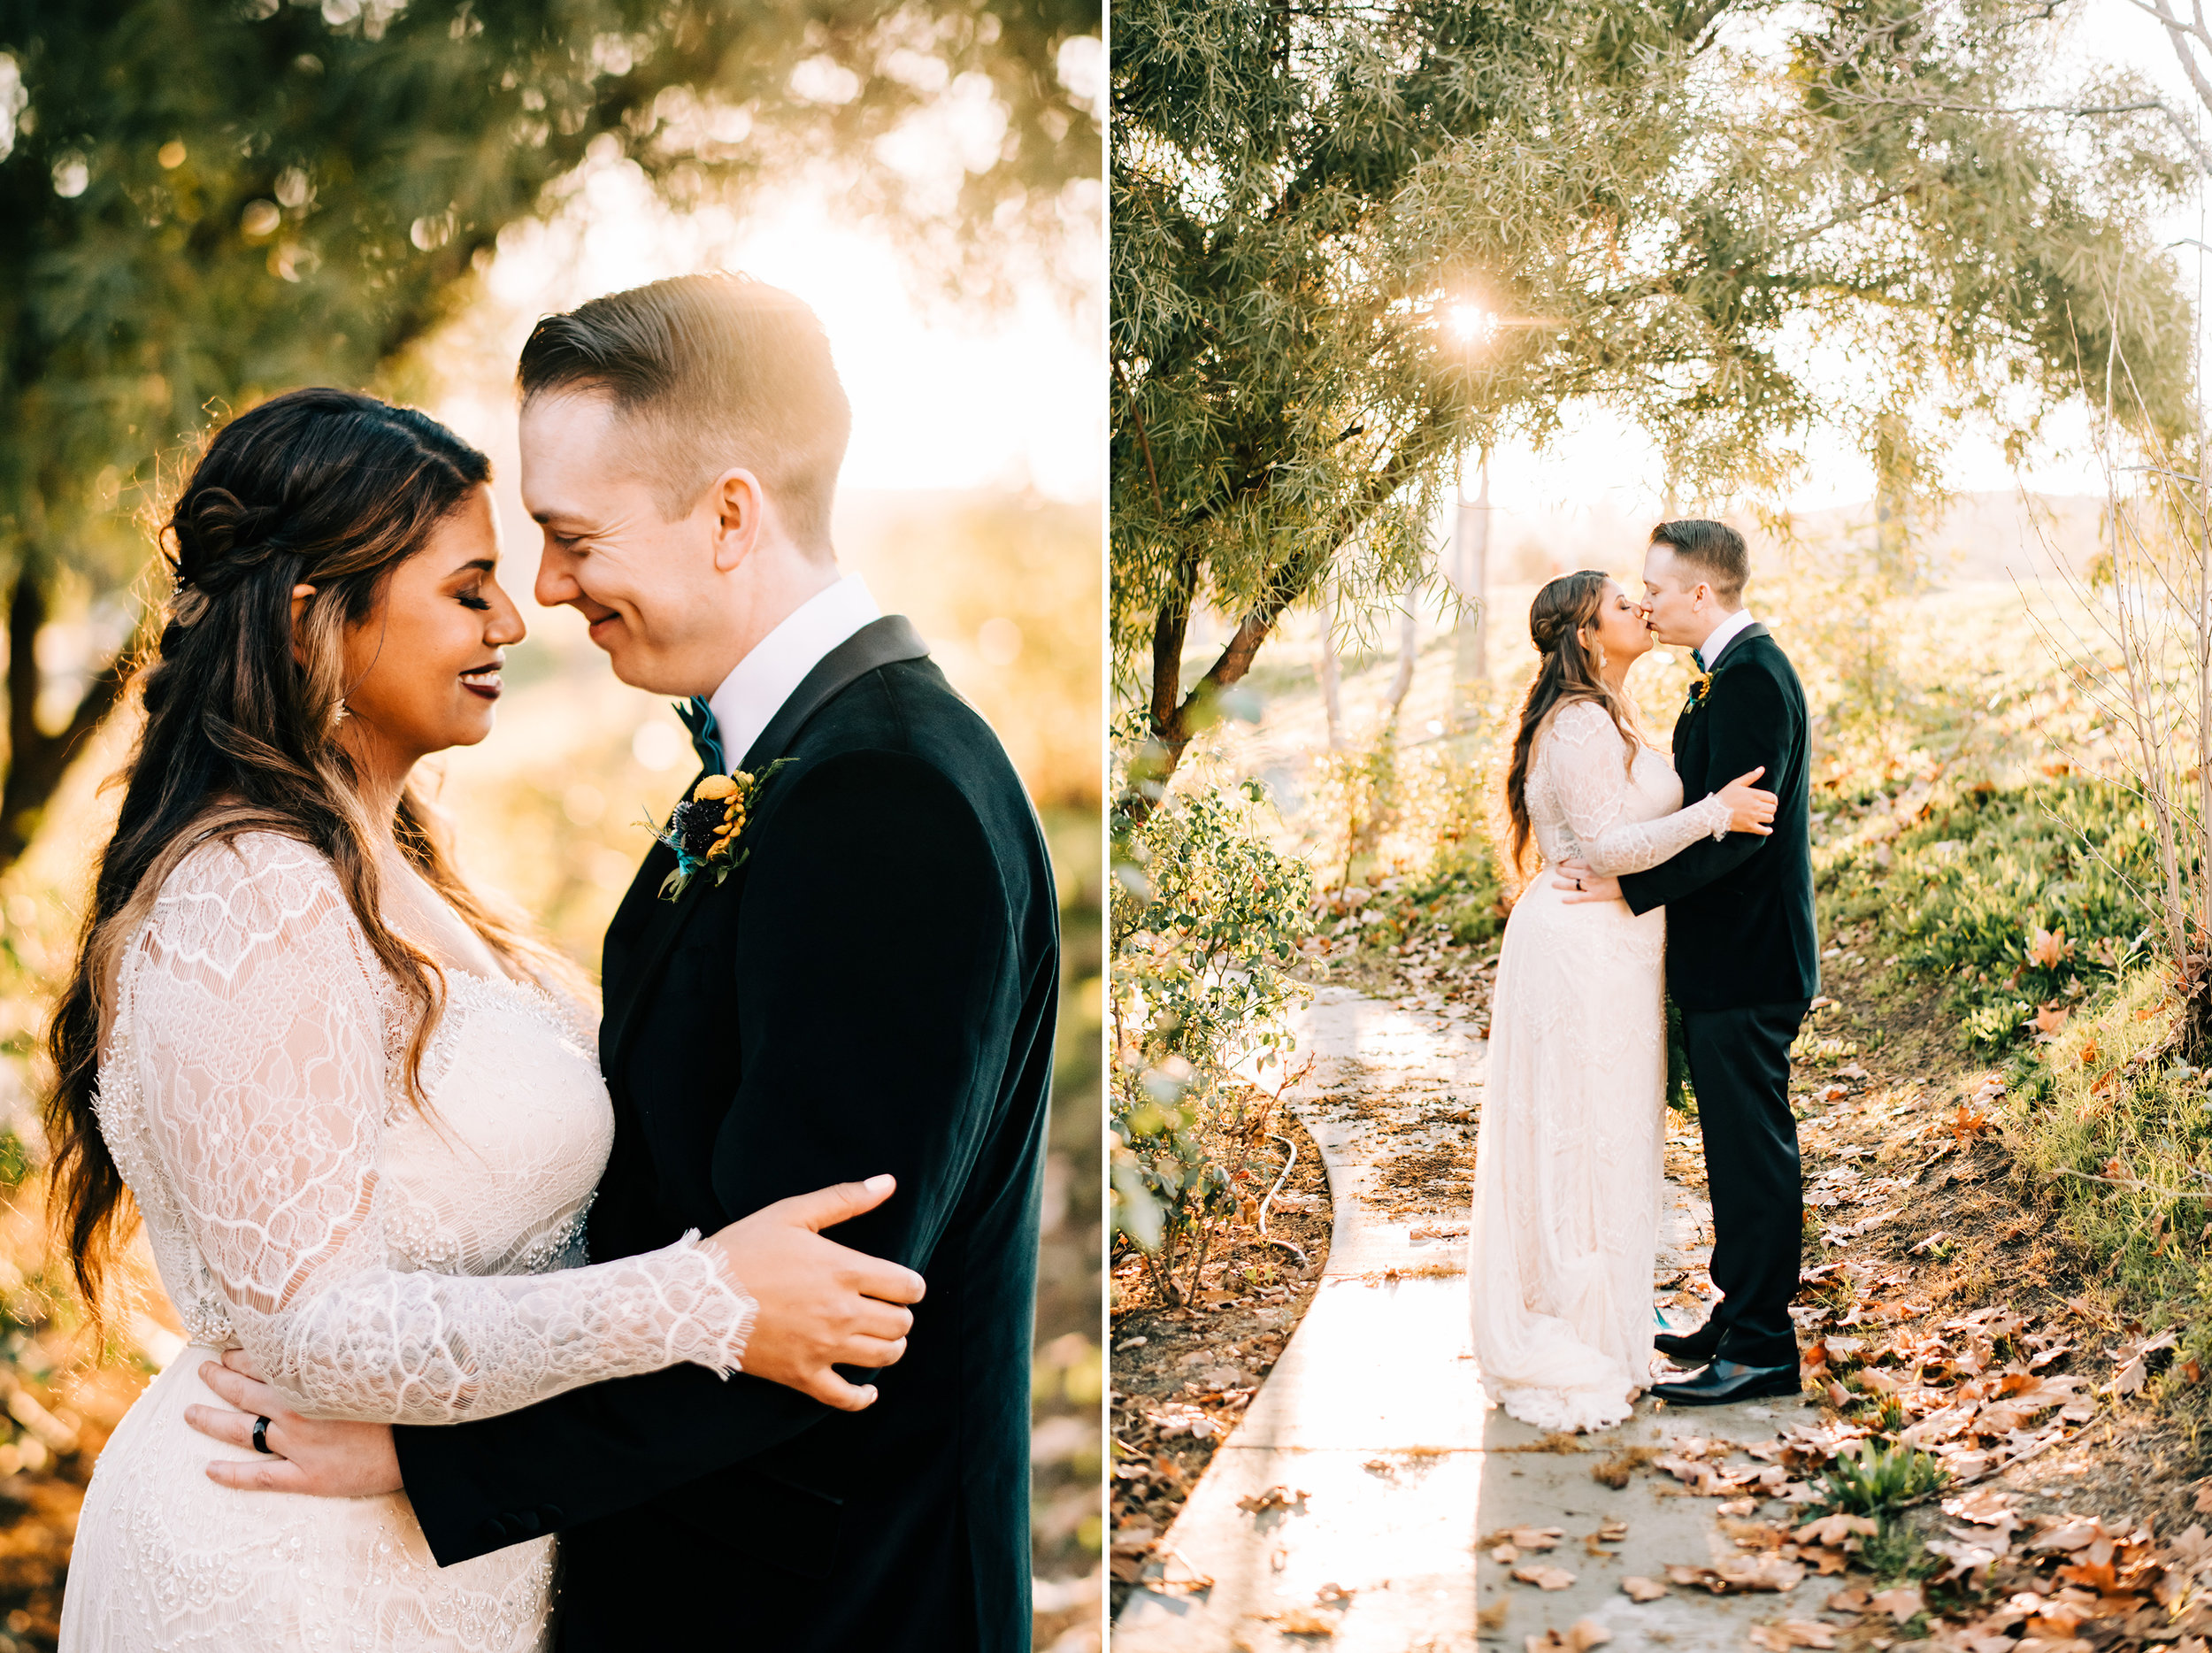 bay area nontraditional wedding photographer southern california boho wedding love light magic san francisco oakland northern california-830.jpg